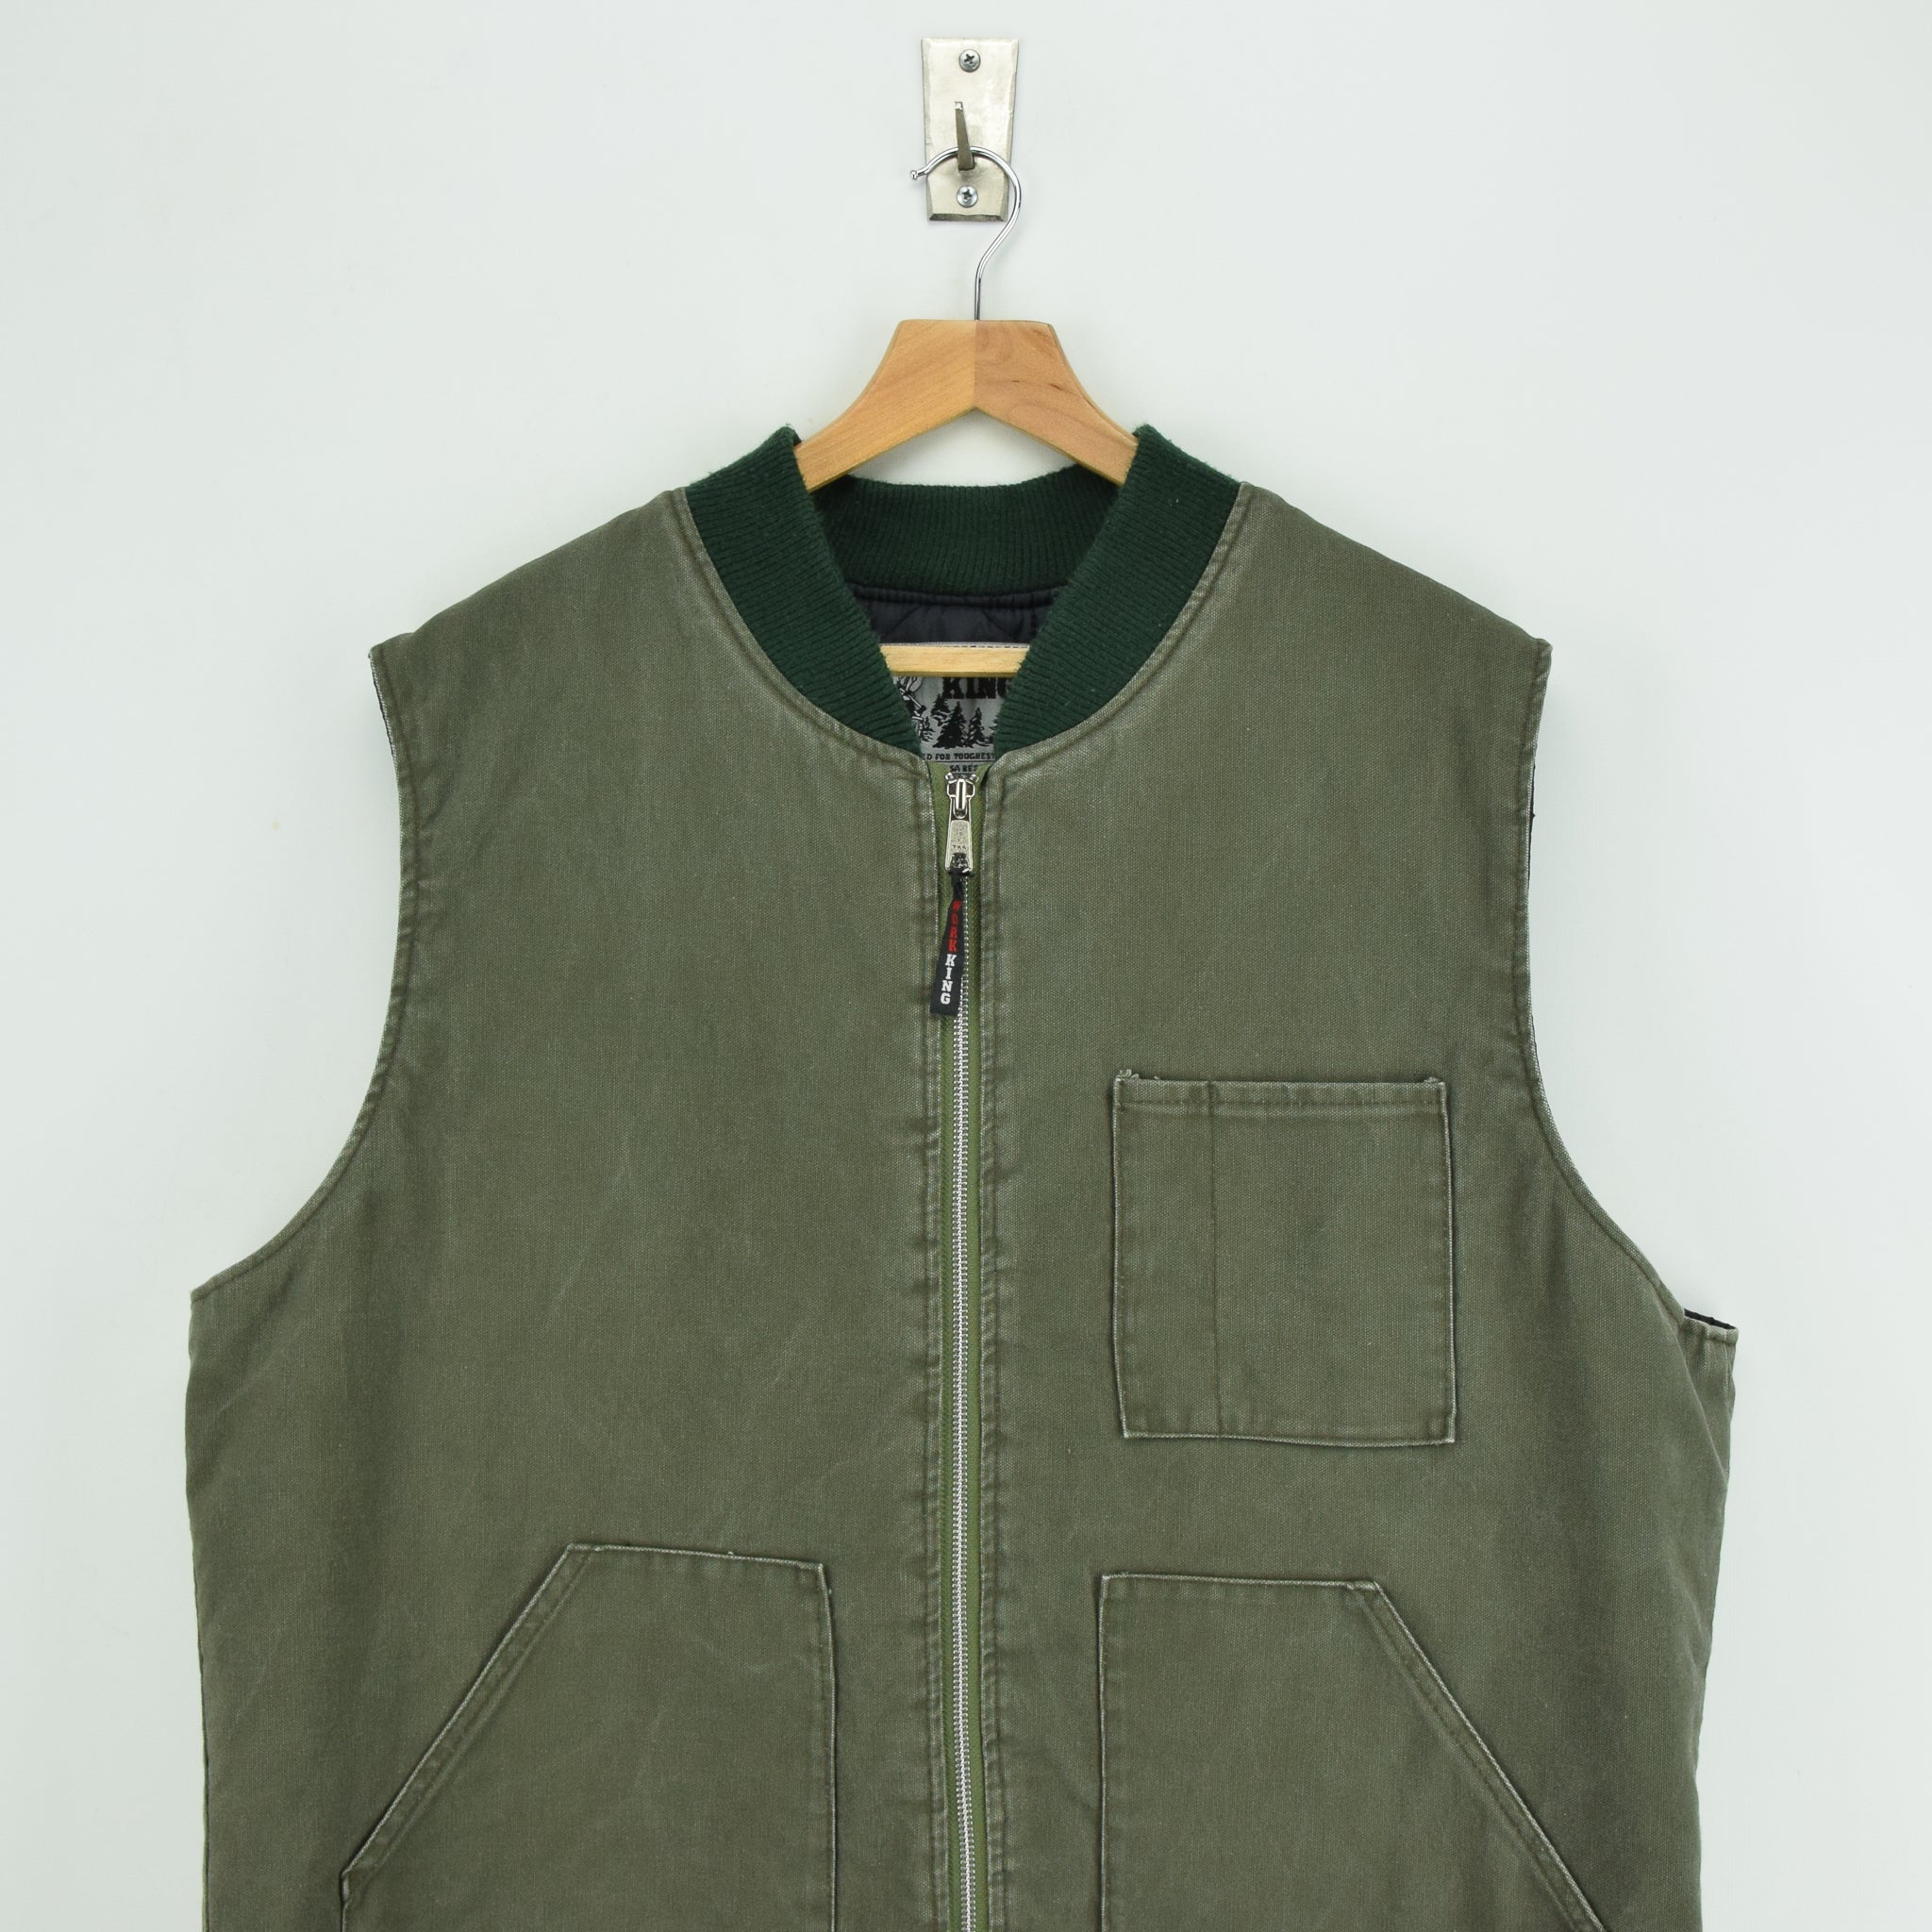 Vintage Work King Gilet Duck Canvas Waistcoat Quilt Lined Vest Made in Canada XL chest